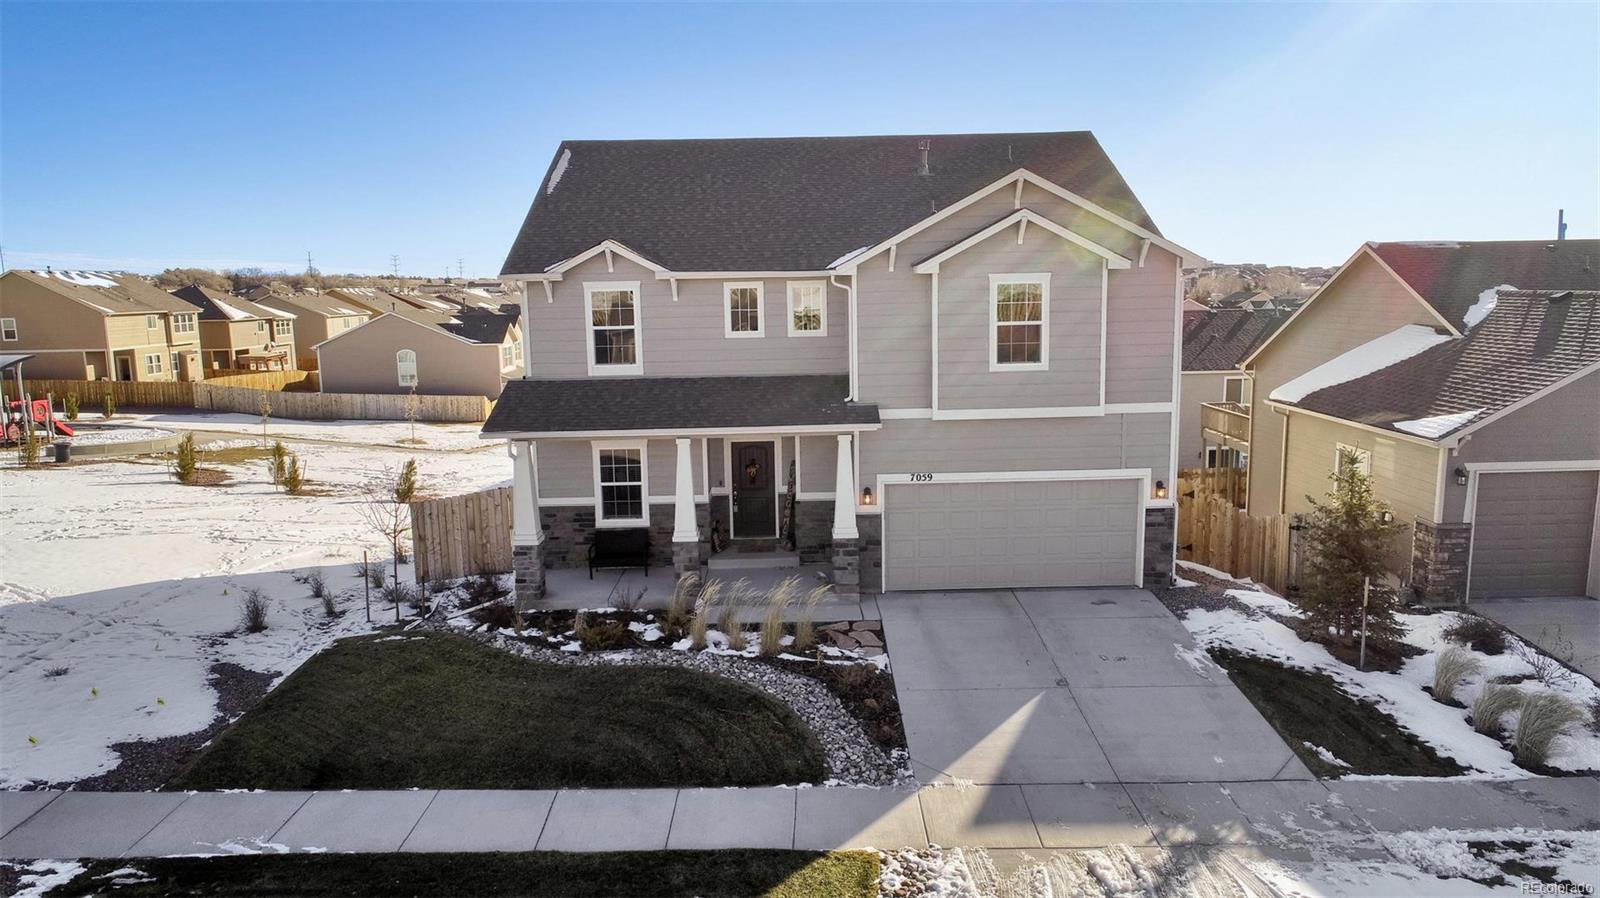 7059 Thorn Brush Way, Colorado Springs, CO 80923 - Colorado Springs, CO real estate listing